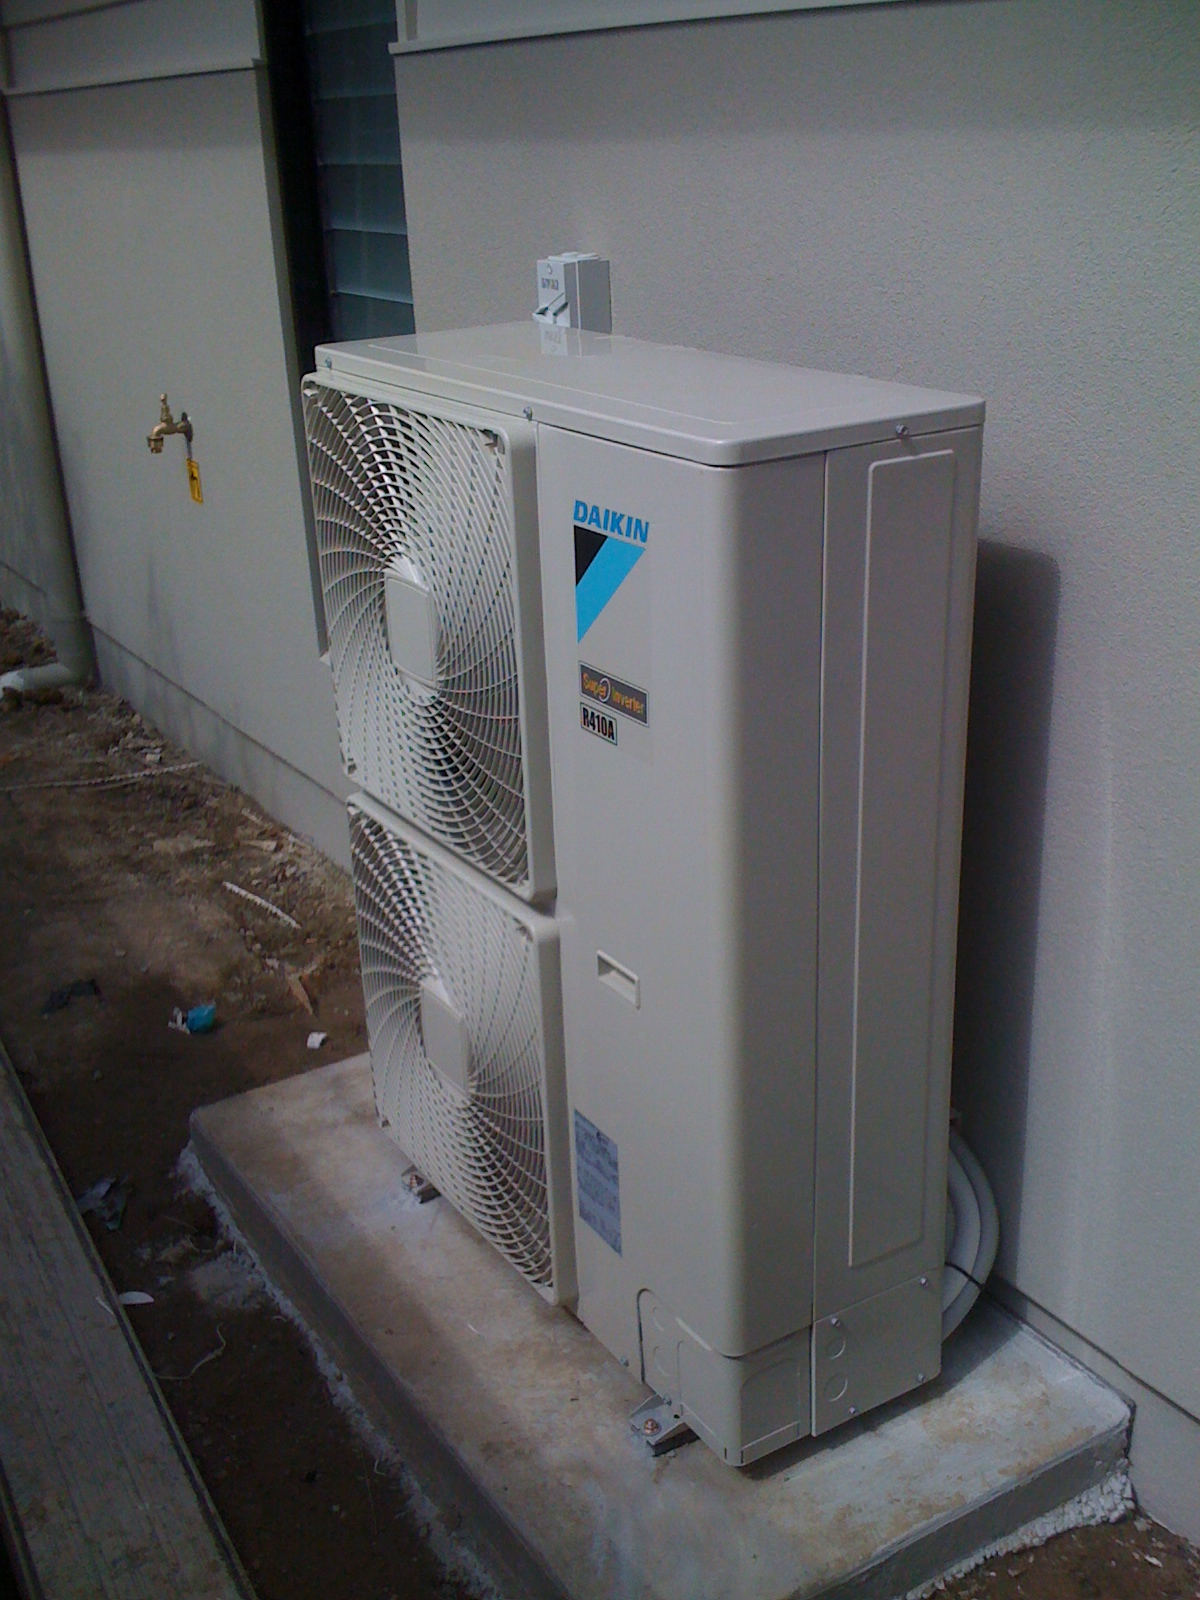 daikin air conditioner air conditioning brisbane airtime air conditioning. Black Bedroom Furniture Sets. Home Design Ideas